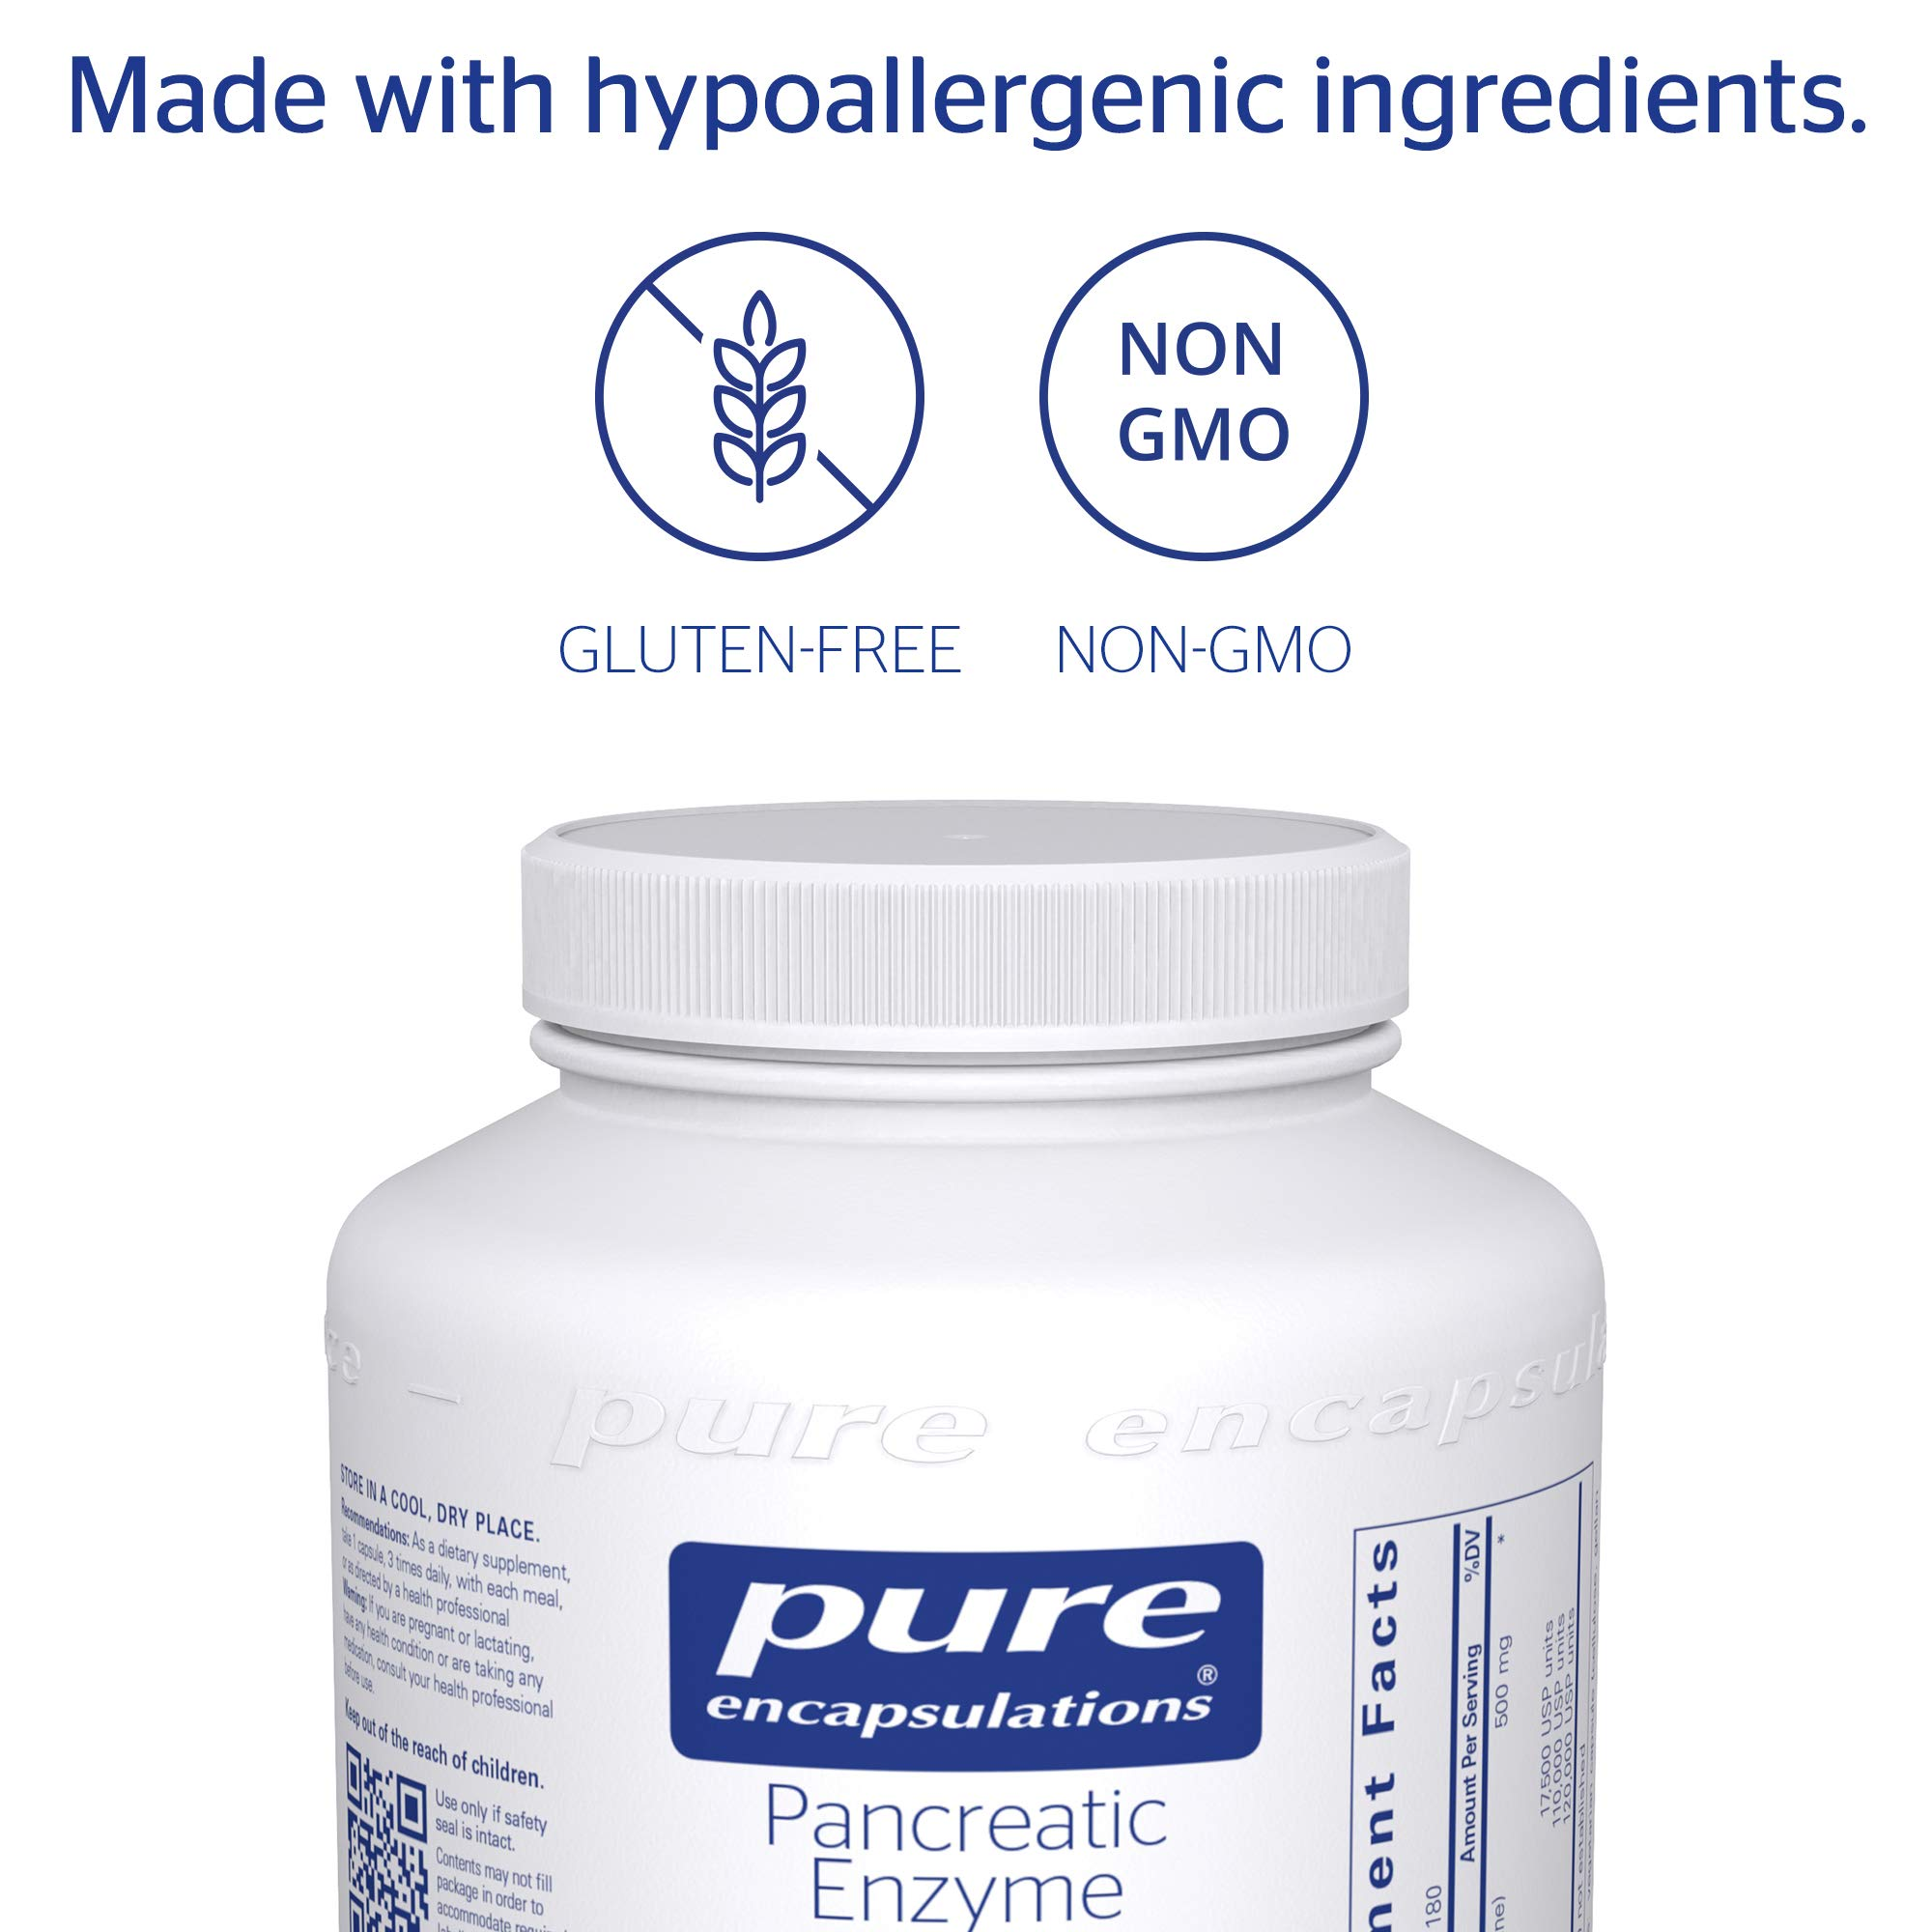 Pure Encapsulations - Pancreatic Enzyme Formula - Hypoallergenic Supplement to Support Proper Digestive Function* - 180 Capsules by Pure Encapsulations (Image #4)